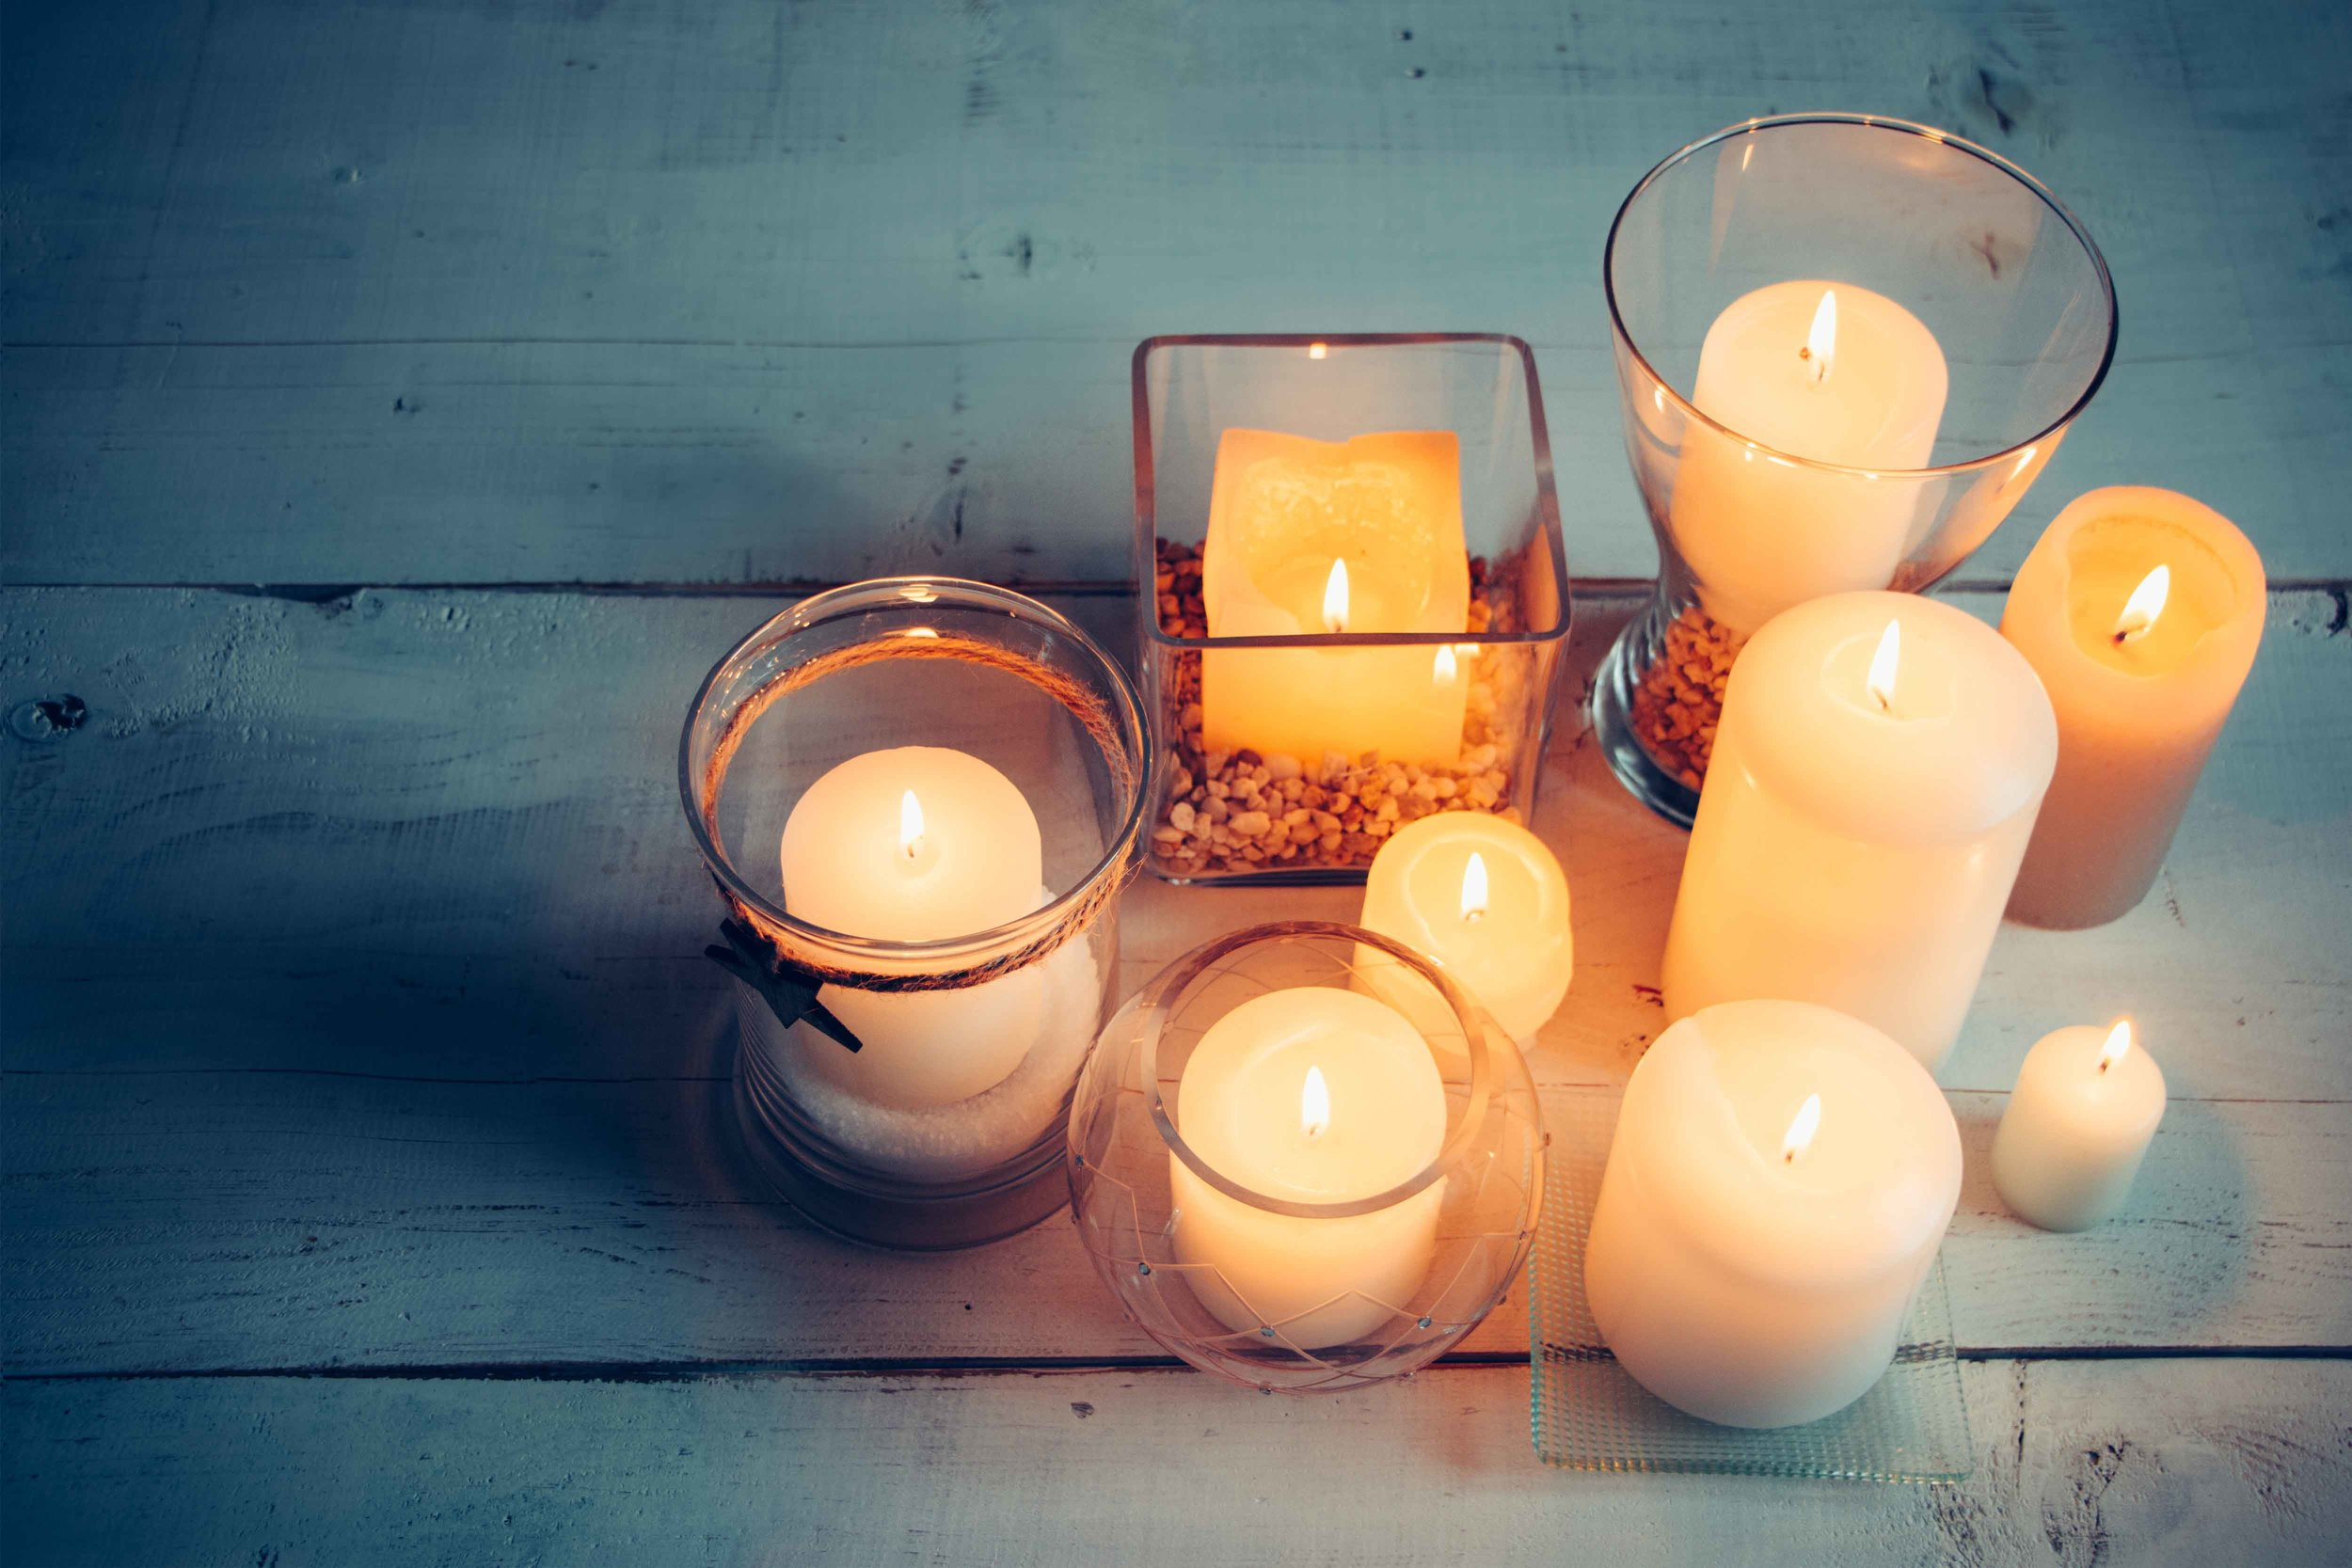 Tips for Finding a Non-Toxic Candle. Learn more at www.shechangeseverything.com